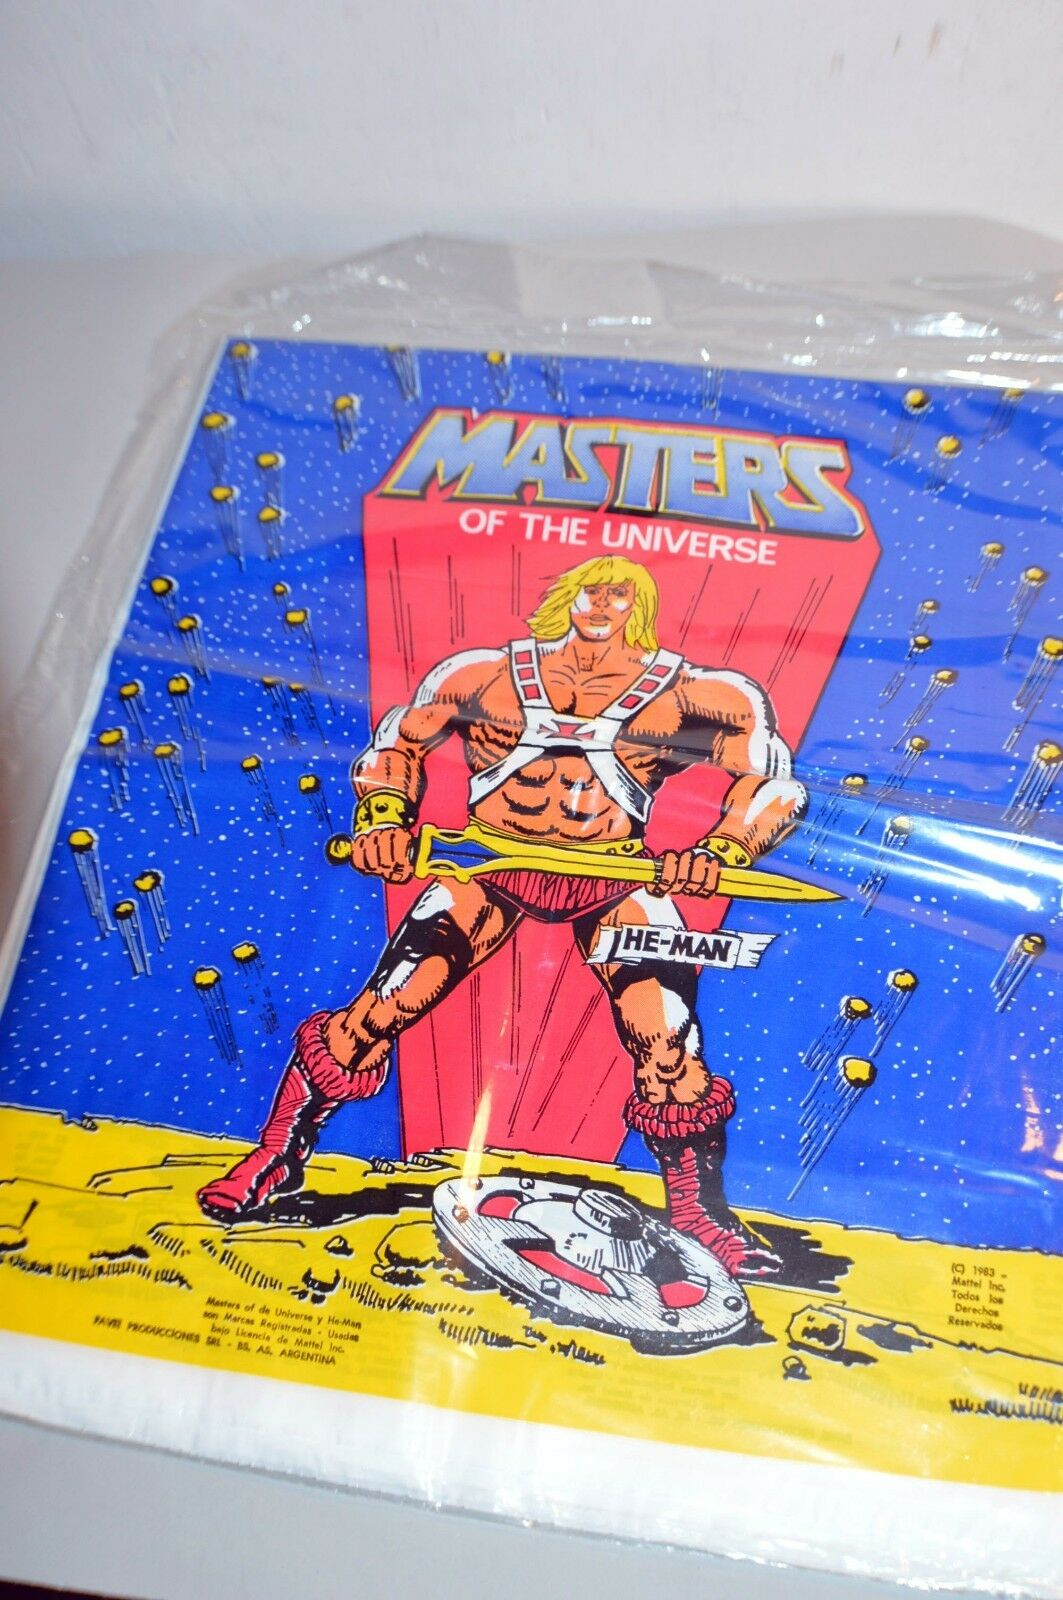 RARE silverINA 1983 VINTAGE MOTU MASTERS OF UNIVERSE PLASTIC PARTY TABLE COVER